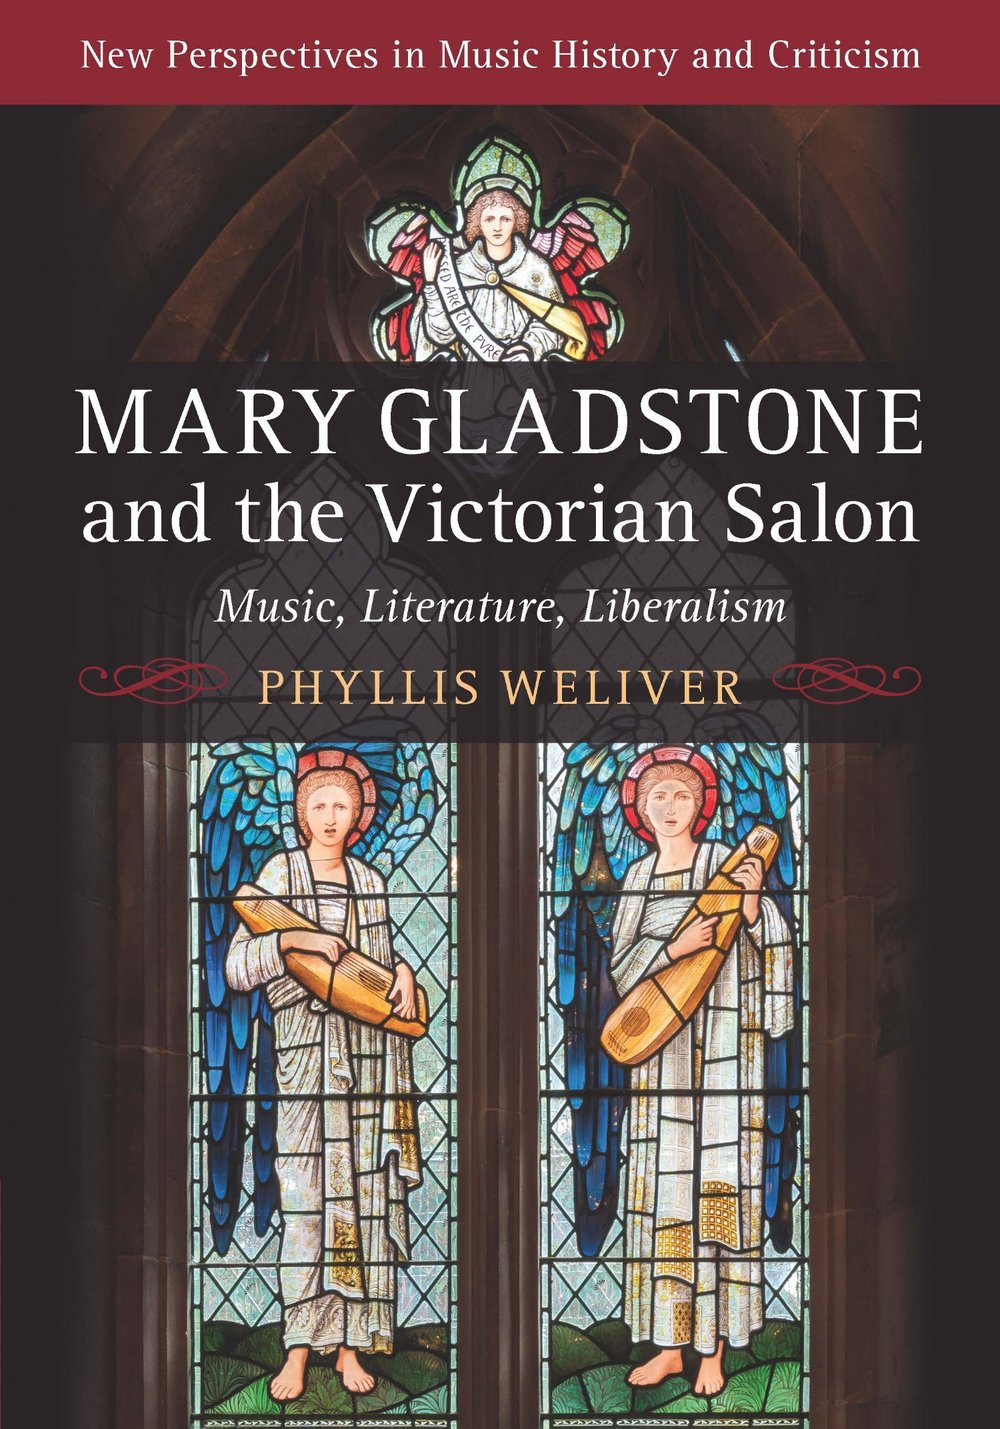 Phyllis Weliver,  Mary Gladstone and the Victorian Salon: Music, Literature, Liberalism  (Cambridge, 2017).